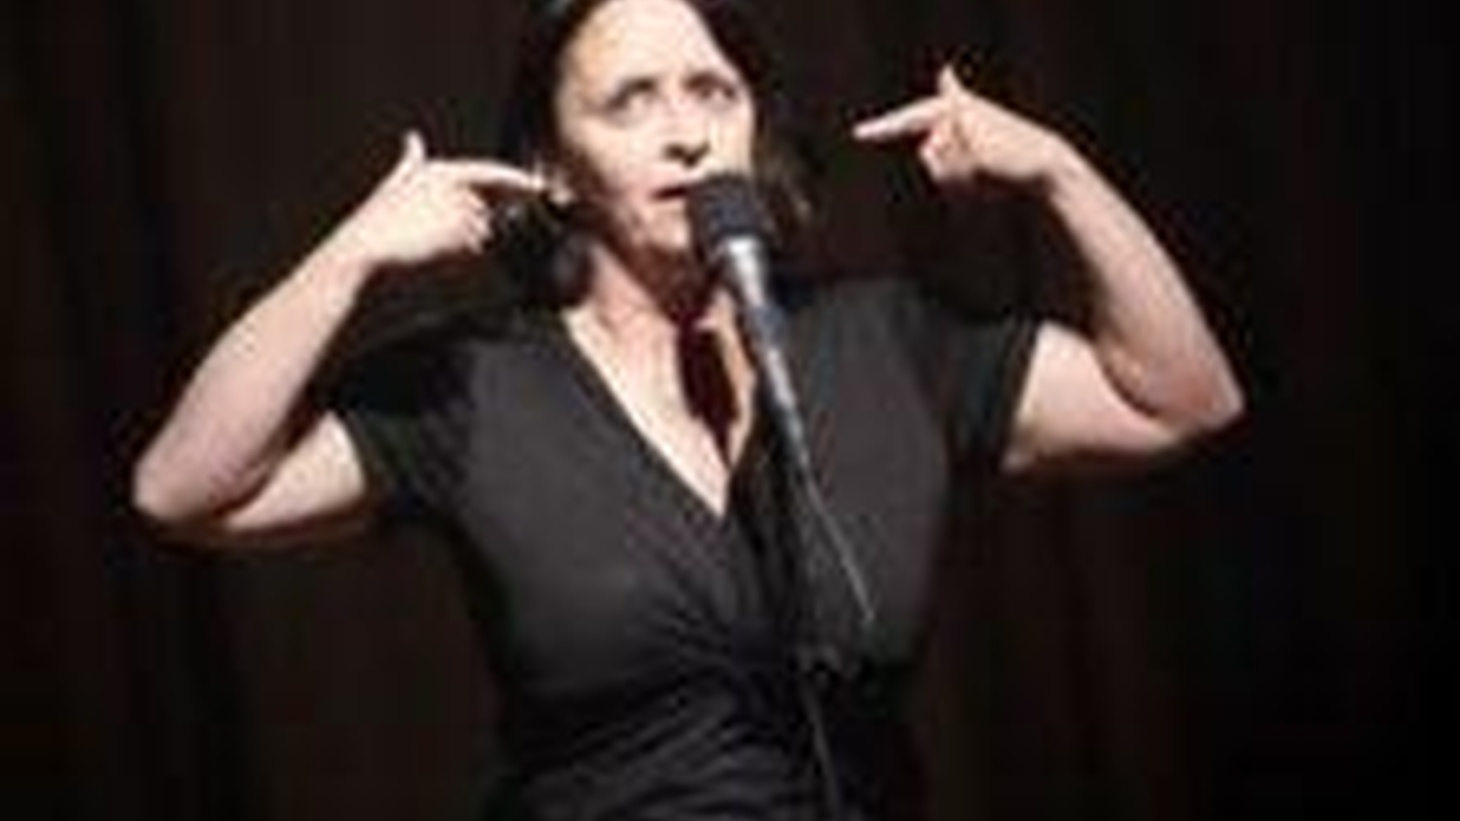 One of the Blue Man Group connects with an audience member; Rachel Dratch meets a possible Mr. Right; a neuroscientist IDs patterns in the brains of psychopathic killers.